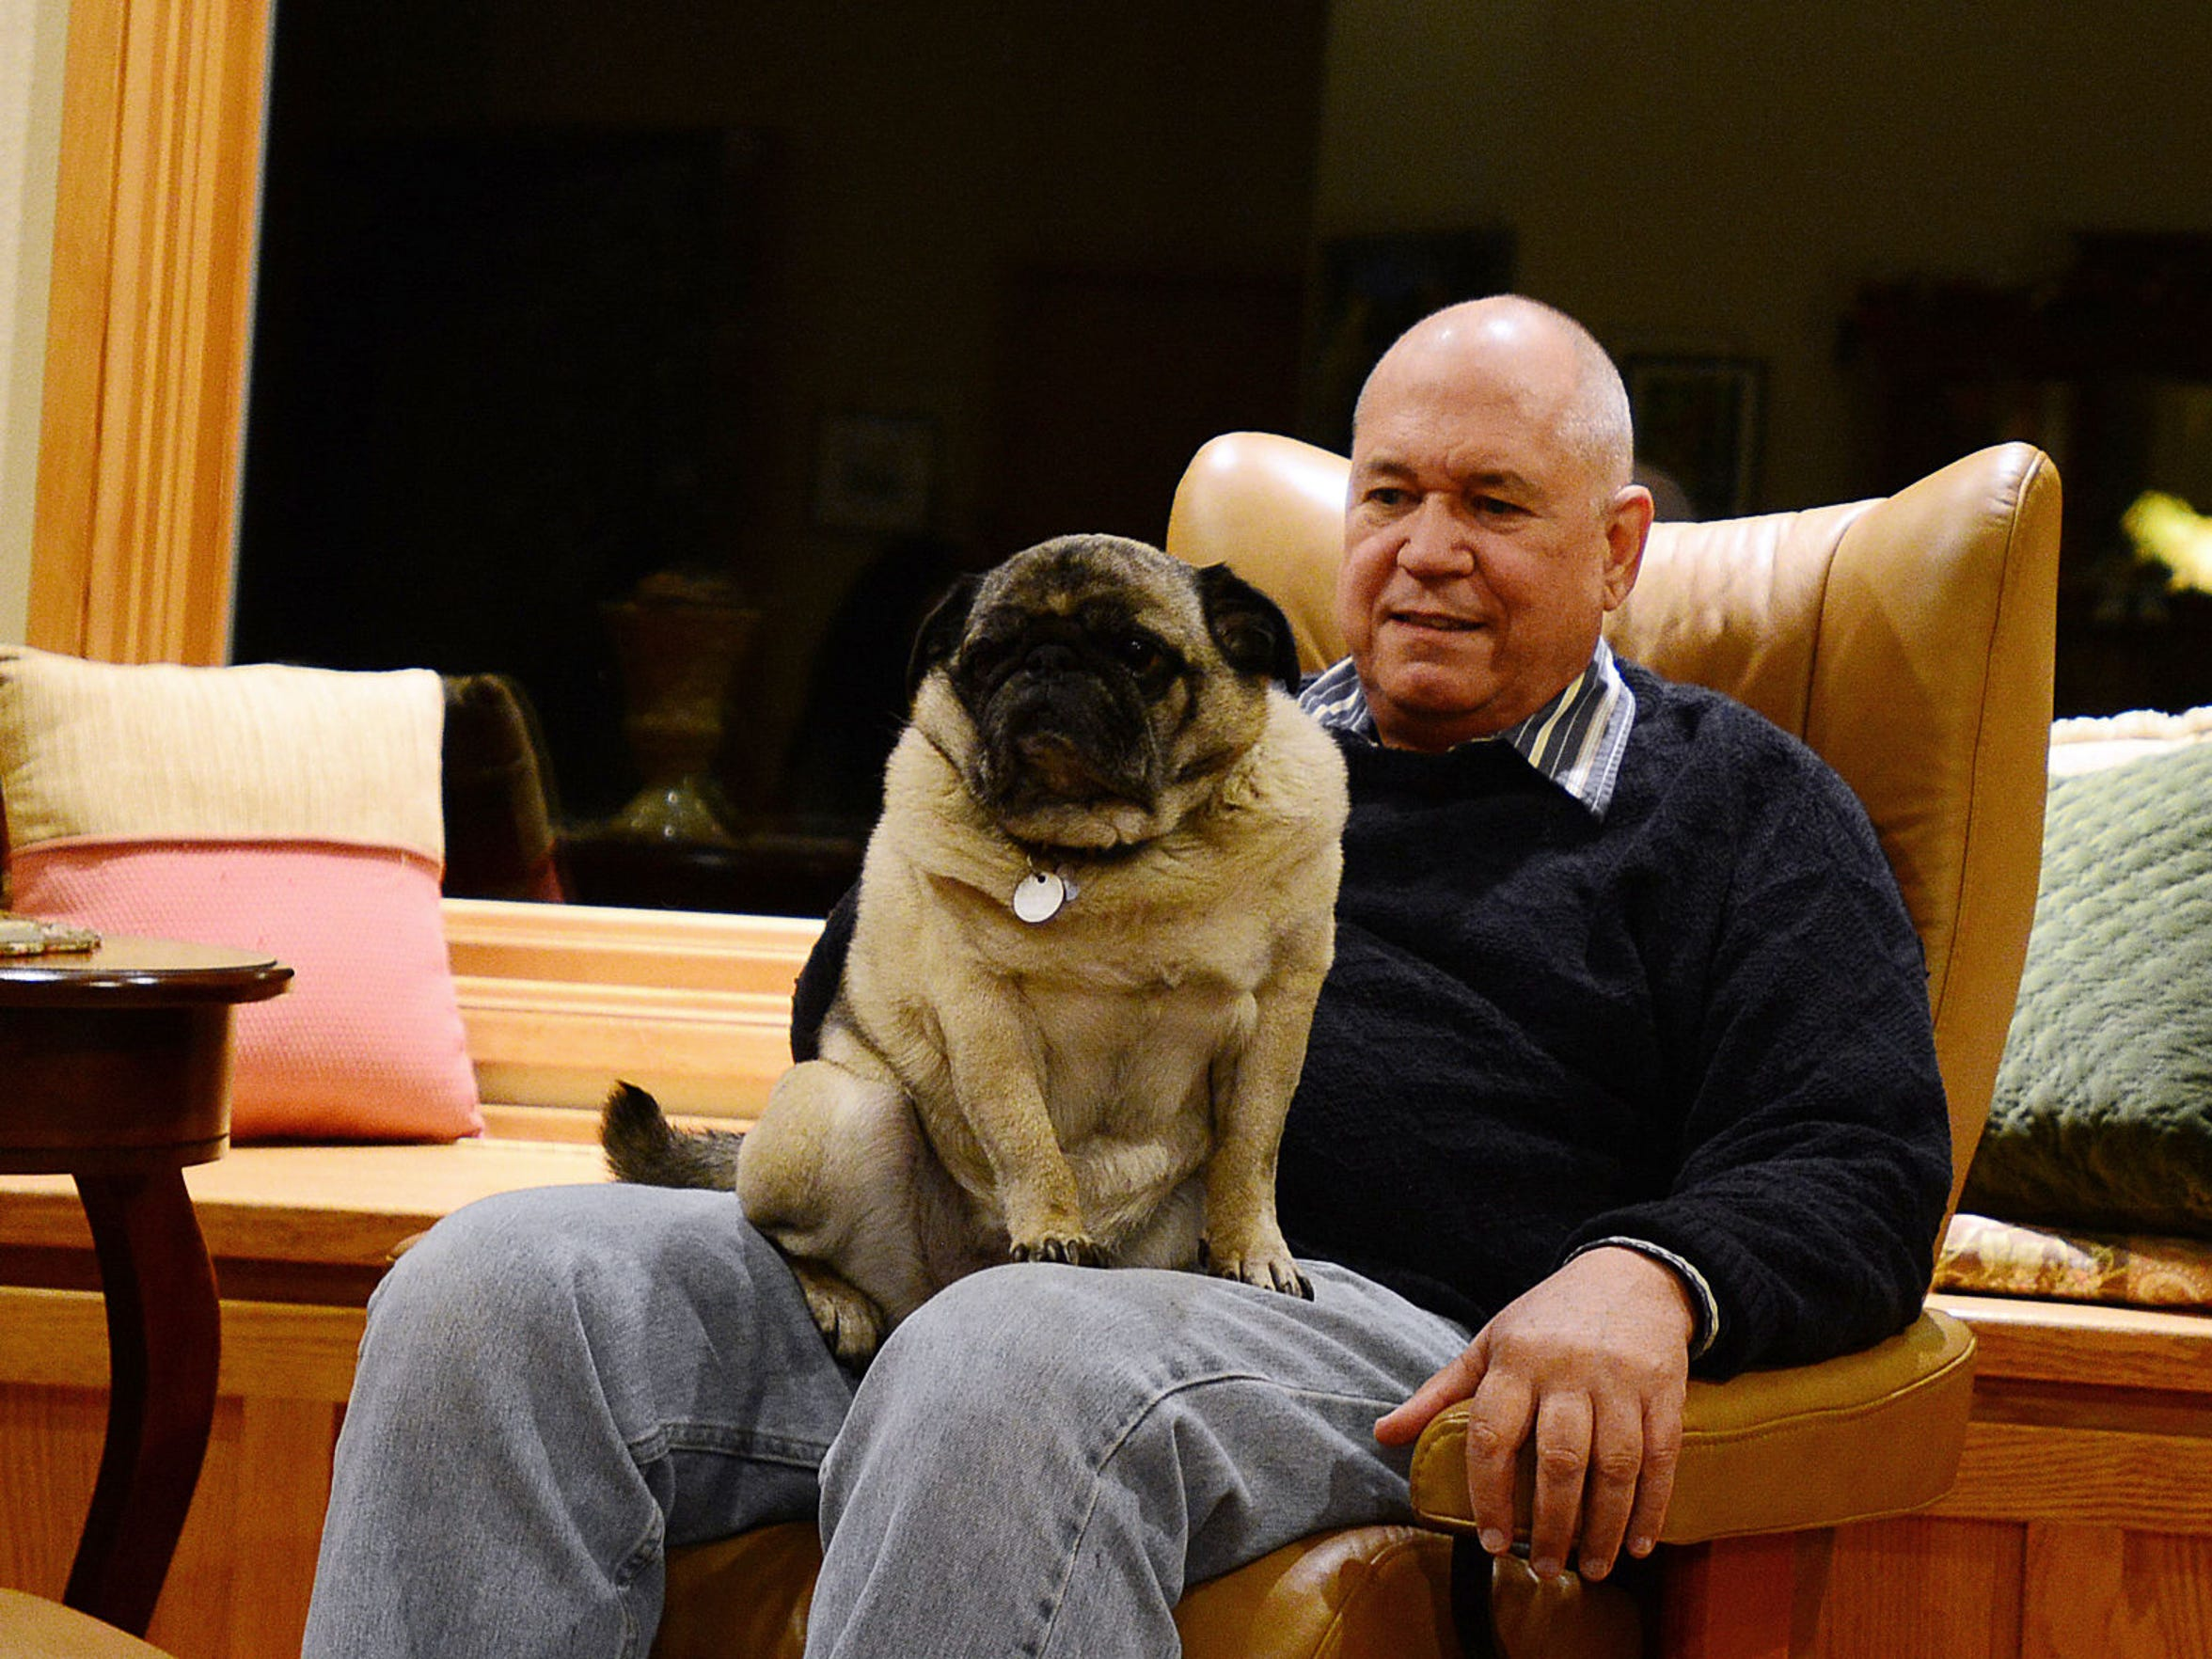 Dr. Peter Rasmussen sits with his dog, Pugsley, at